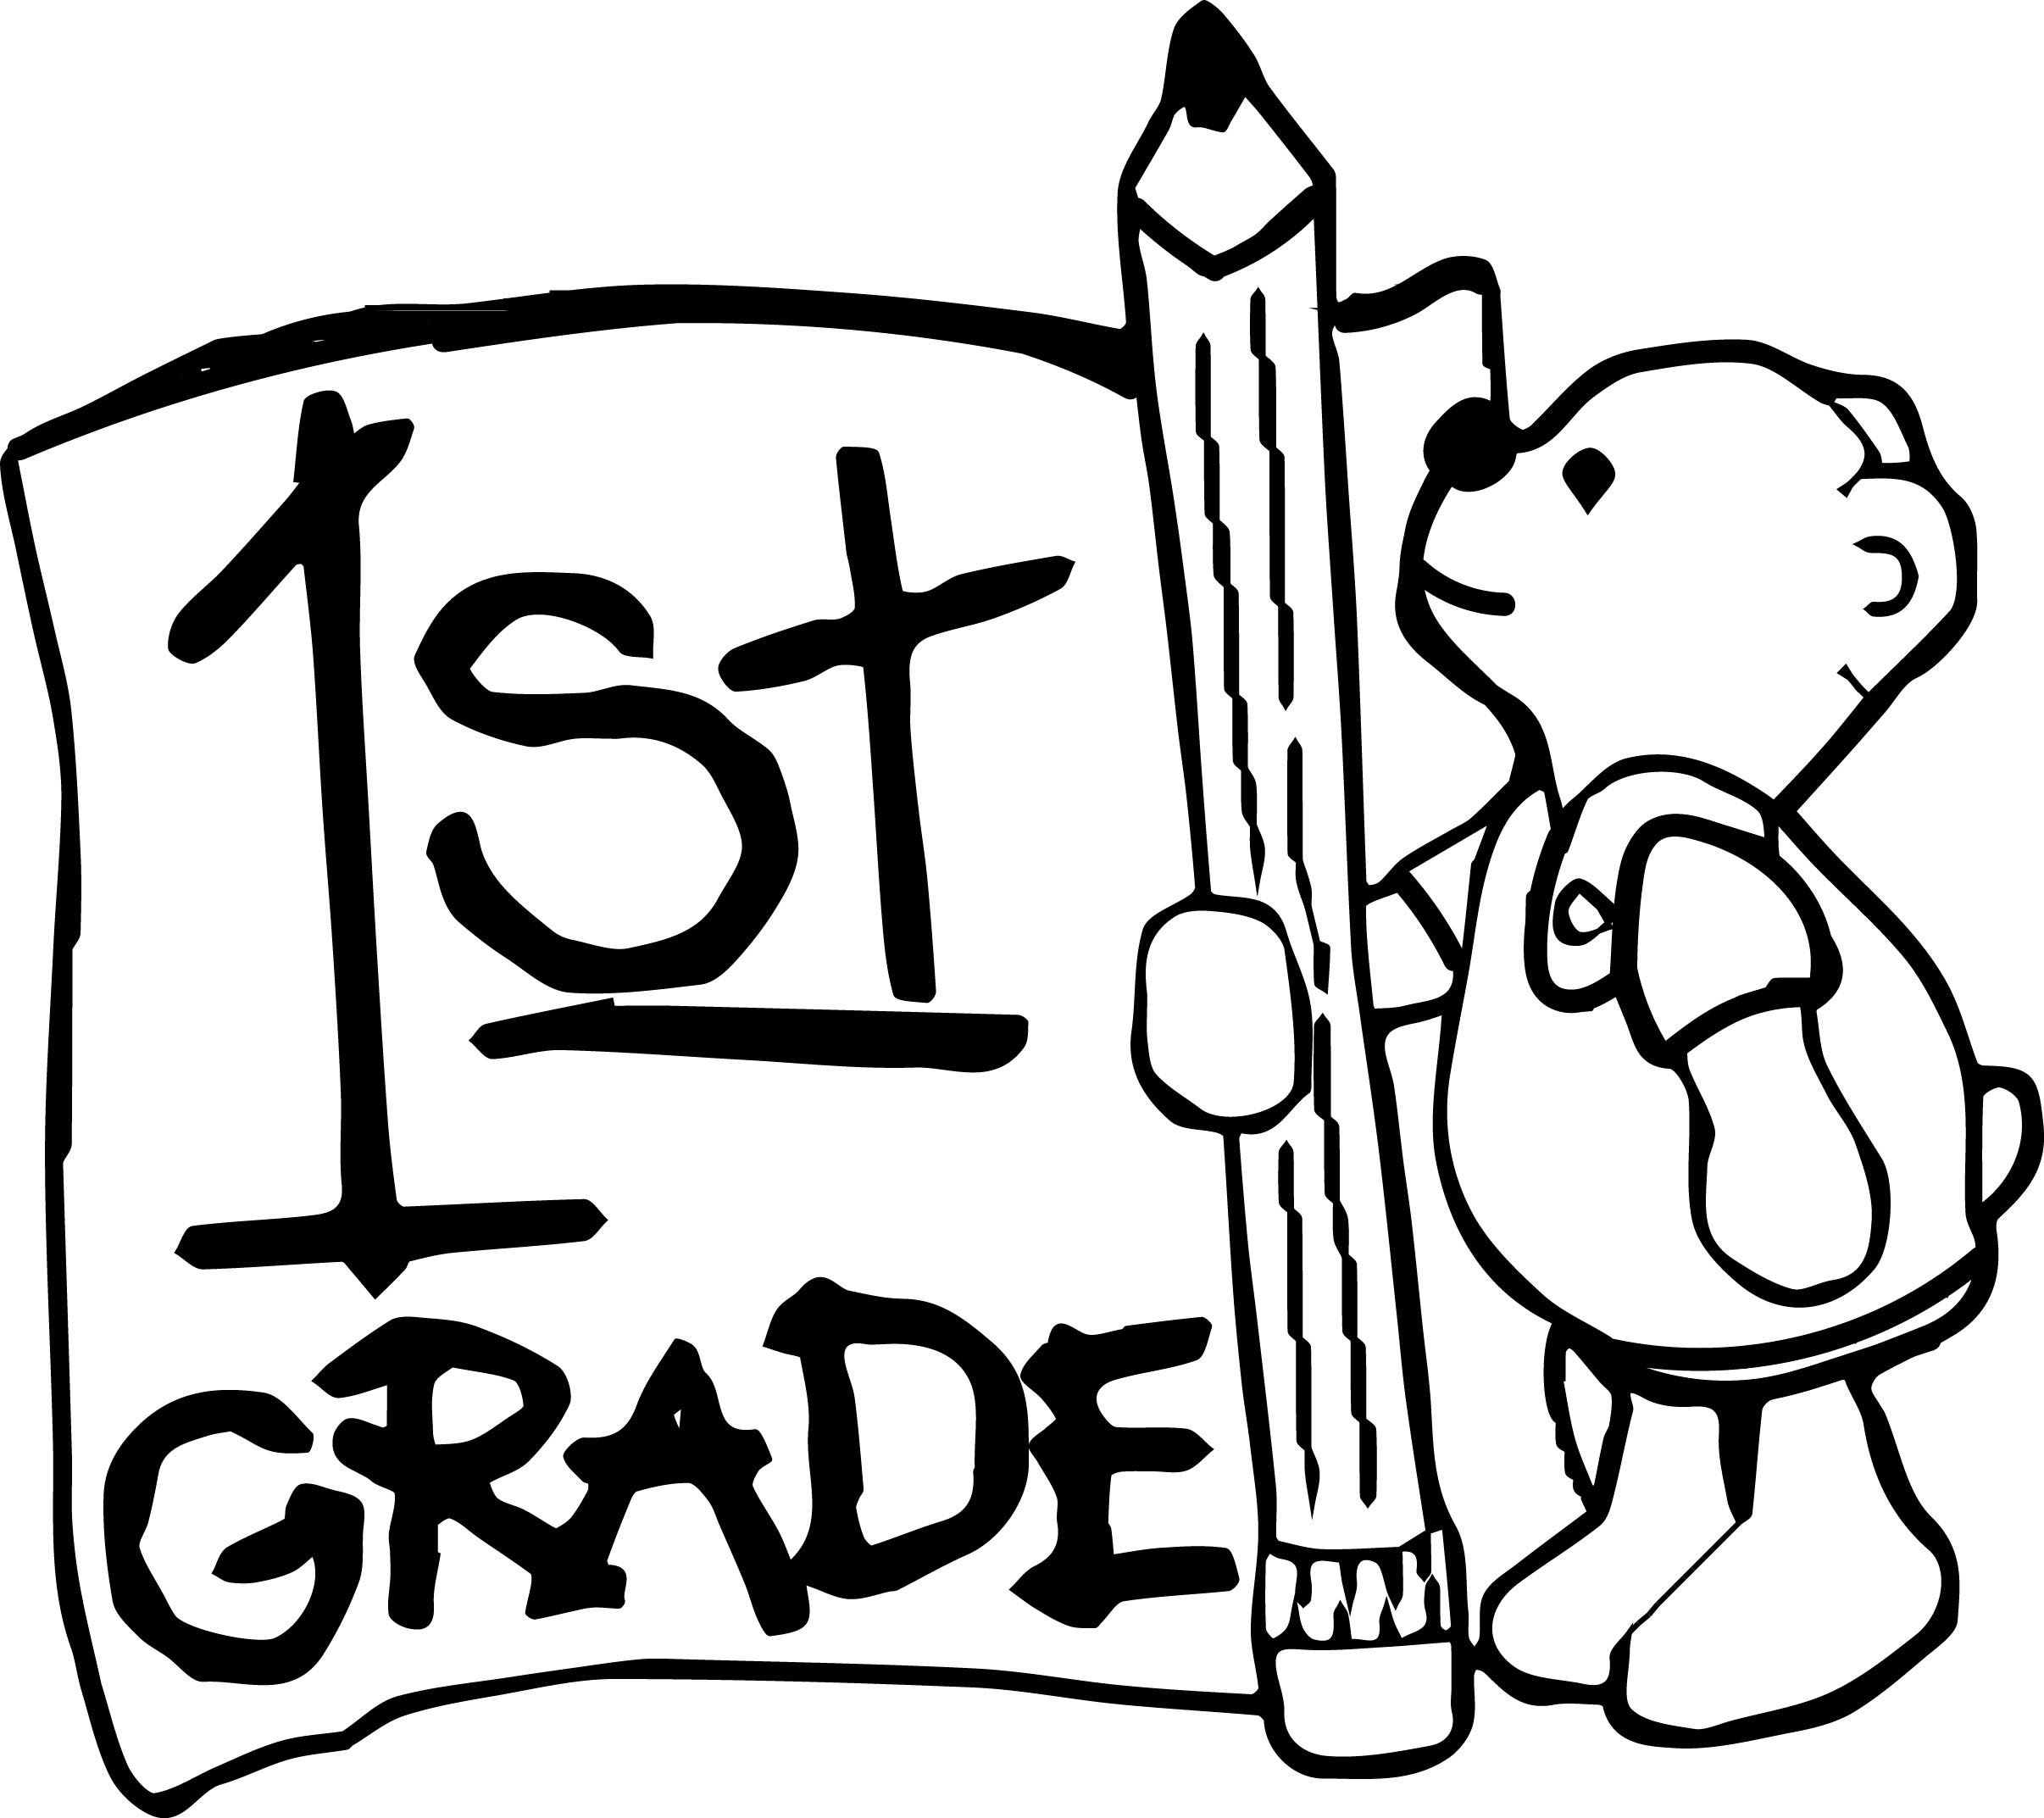 1st Grade Bear Coloring Page